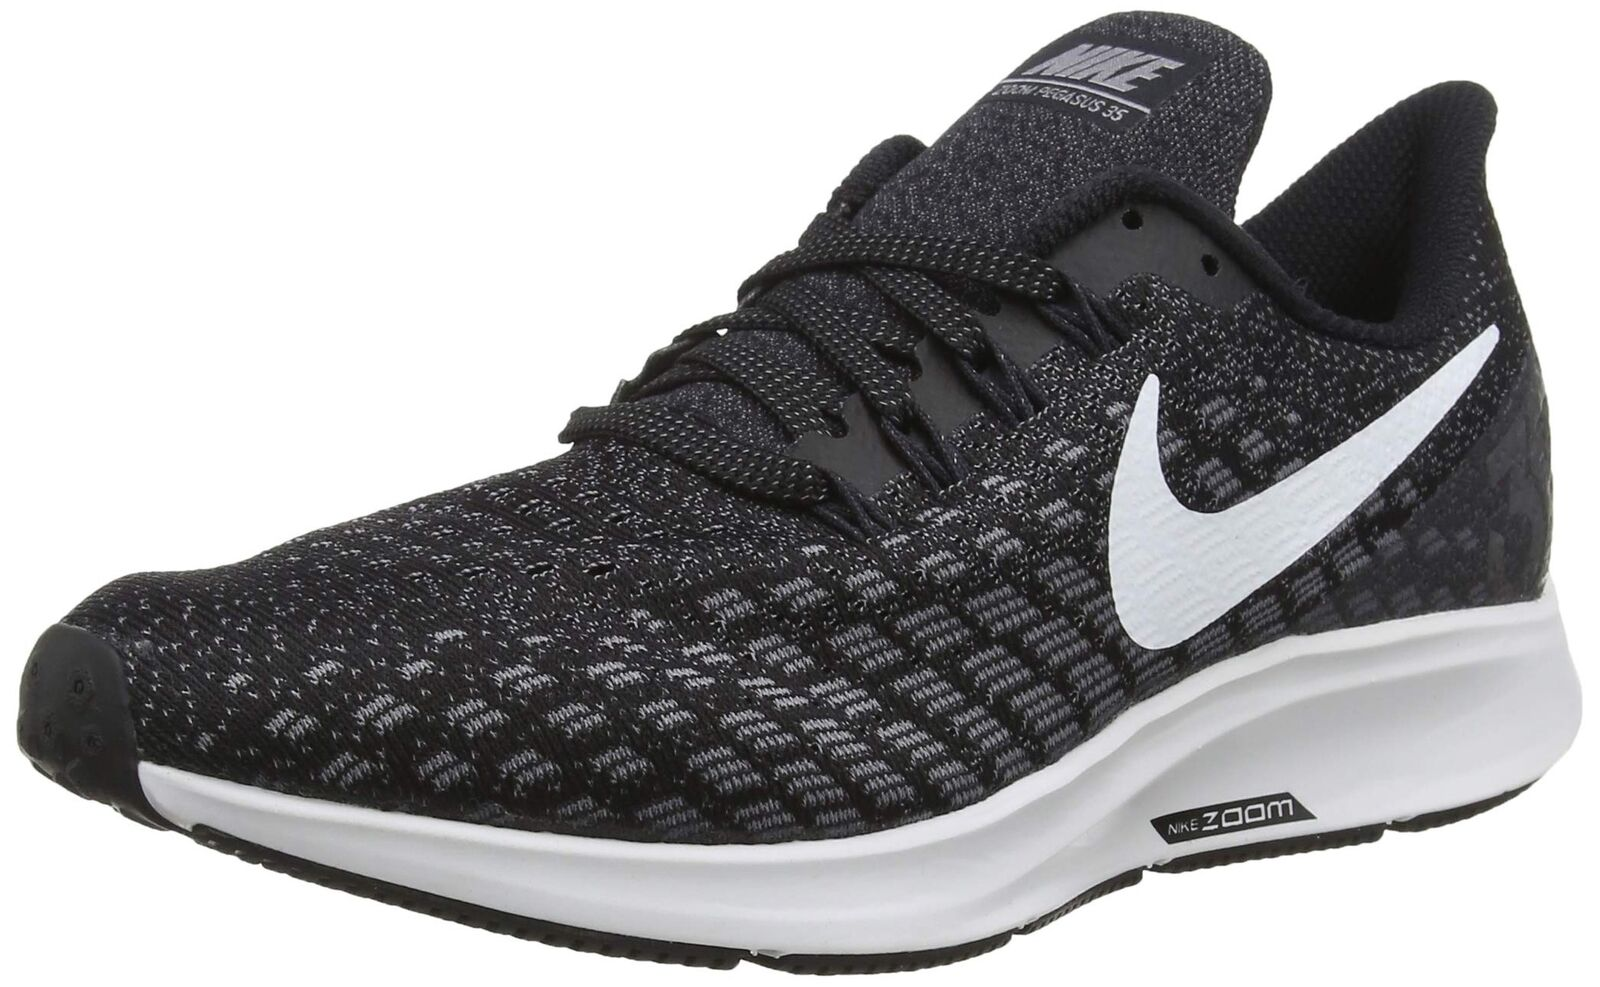 NIKE Men's Air Zoom Pegasus 35 Running shoes, Black White-Gunsmoke-Oil Grey, 8